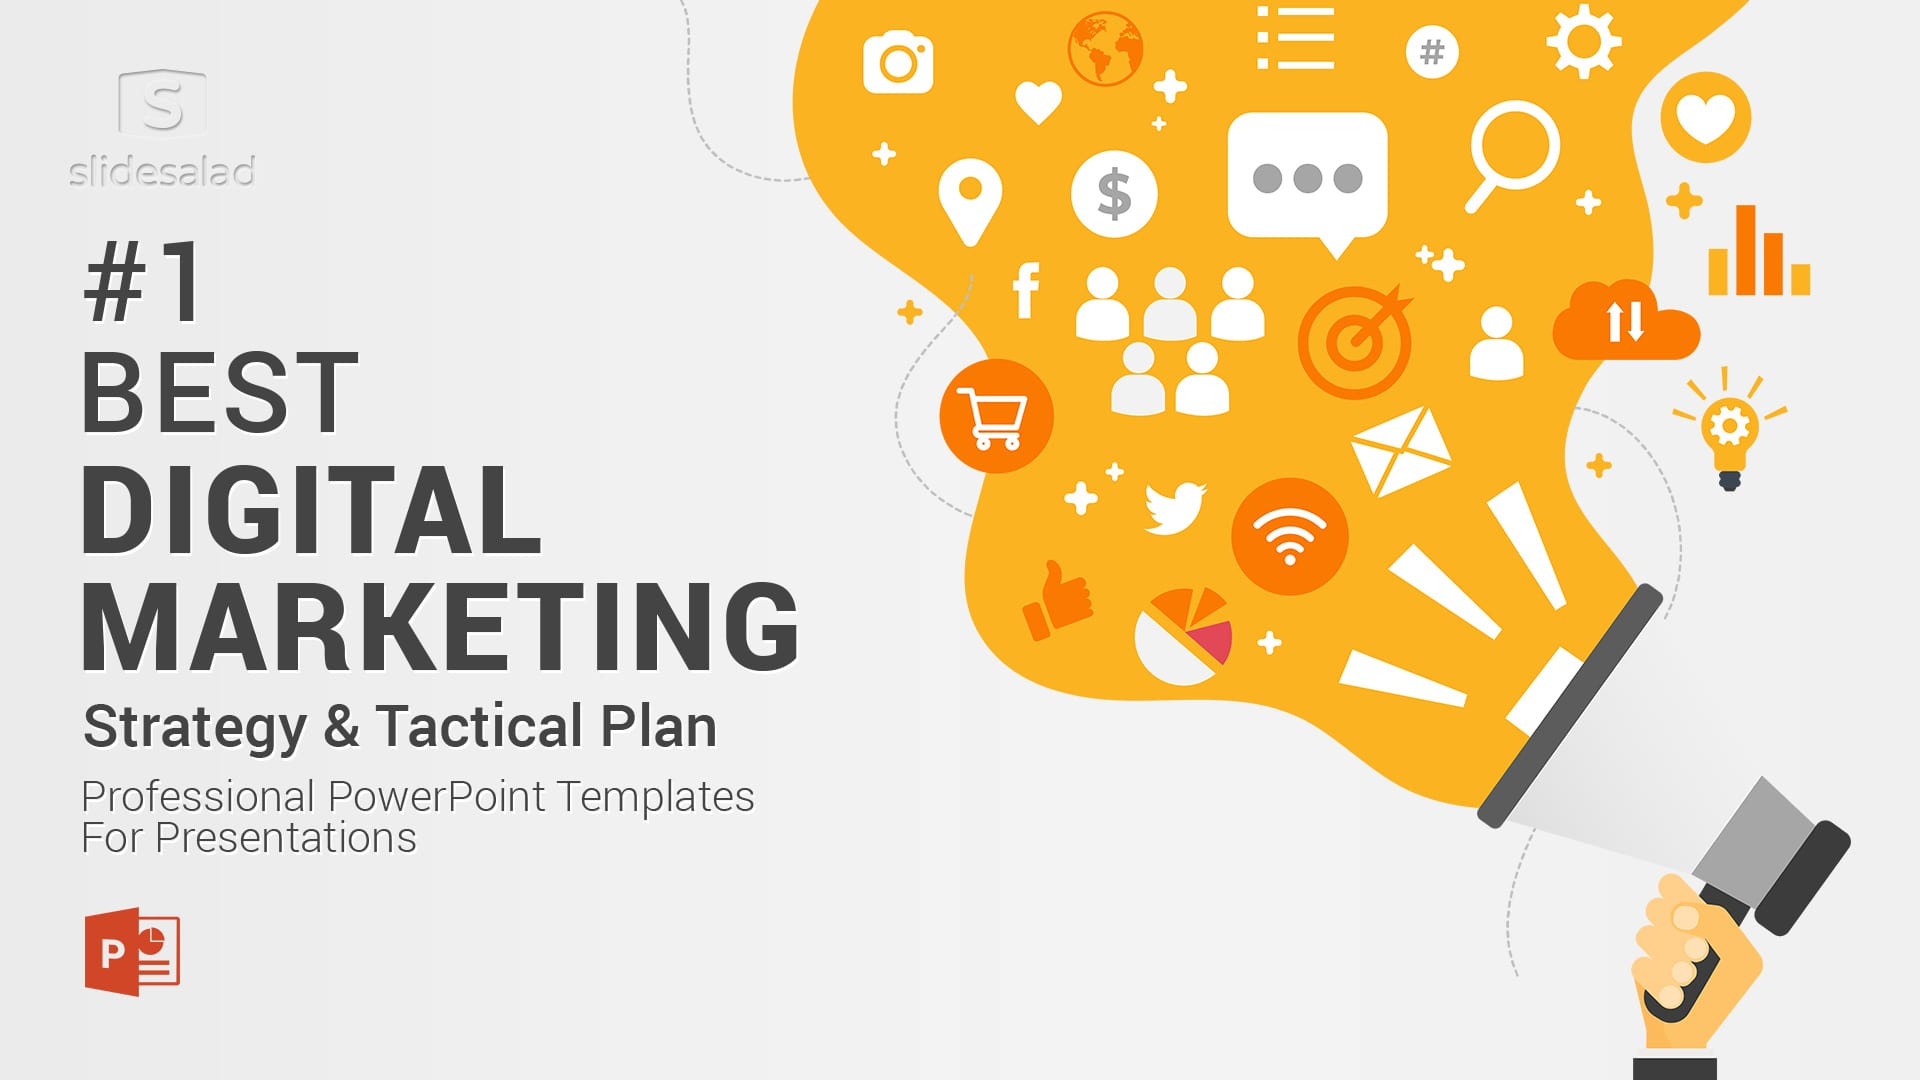 40 Animated Powerpoint Ppt Templates For Presentations 2021 Slidesalad